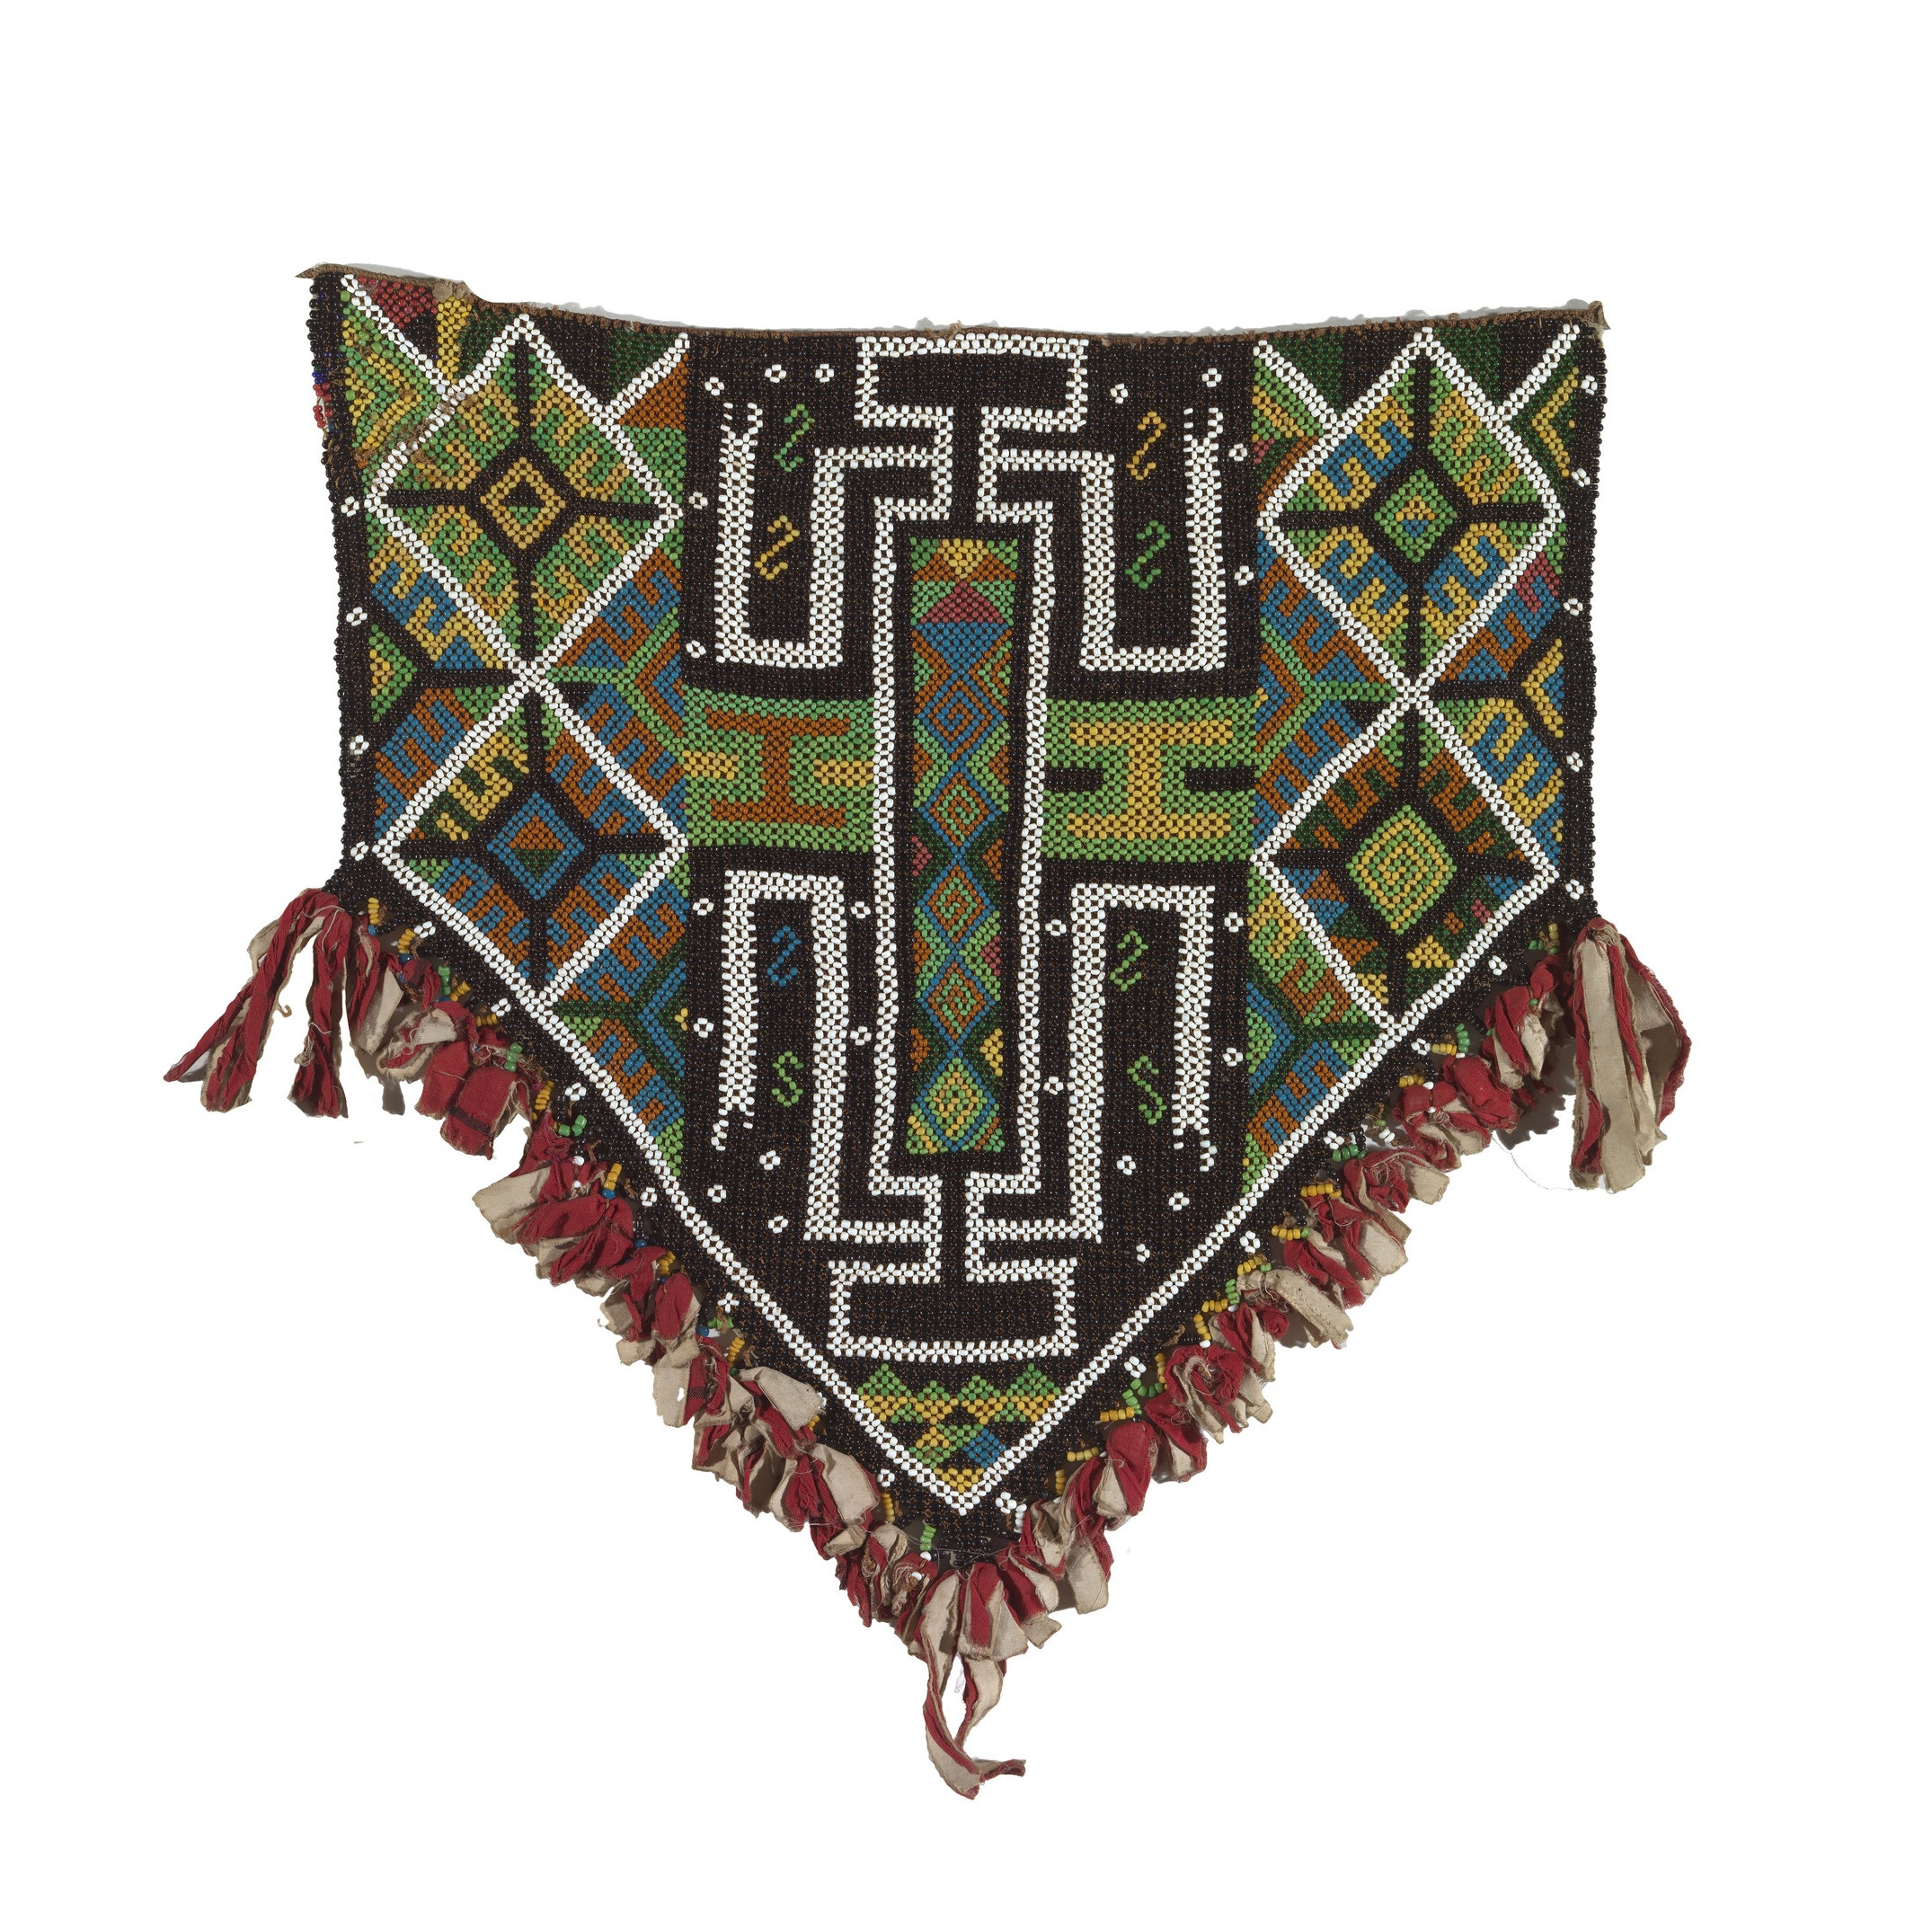 Woman's Dance Apron Early 20th Century | Doreri District, West Papua, Indonesia Beads, Fibre Thread, Commercial Cotton Cloth, Bead-Work 52.0 (h) x 58.0 (w) cm Purchased 1986 National Gallery of Australia | 1986.2456